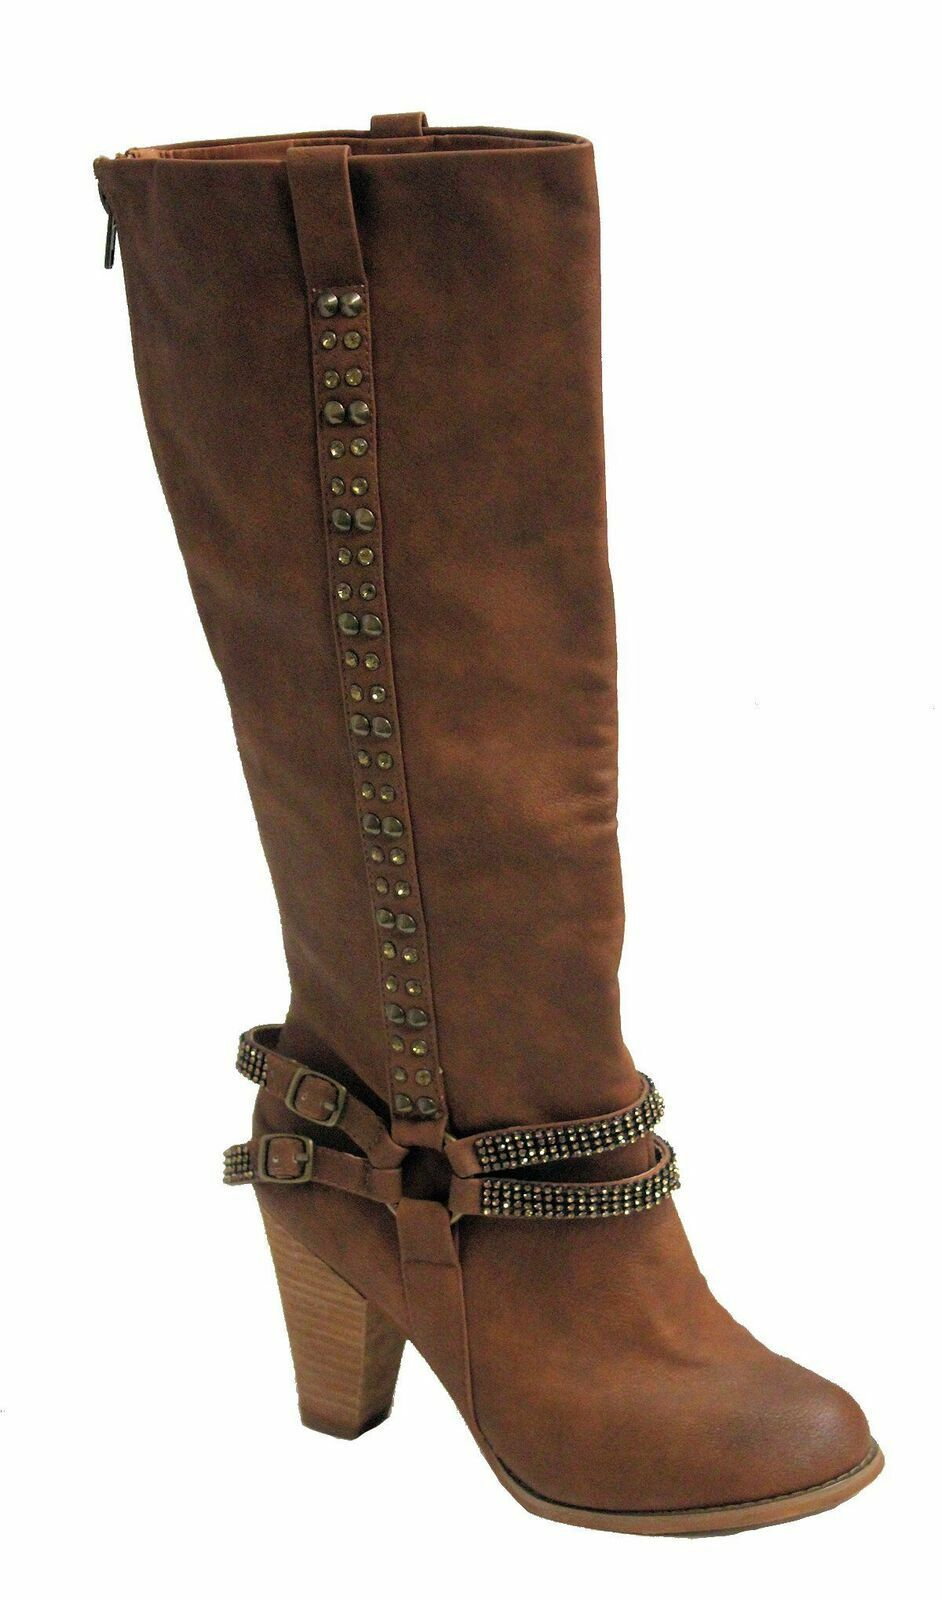 Not Rated Women's Tall Crystals Boot Caramel US 6.5 NOB